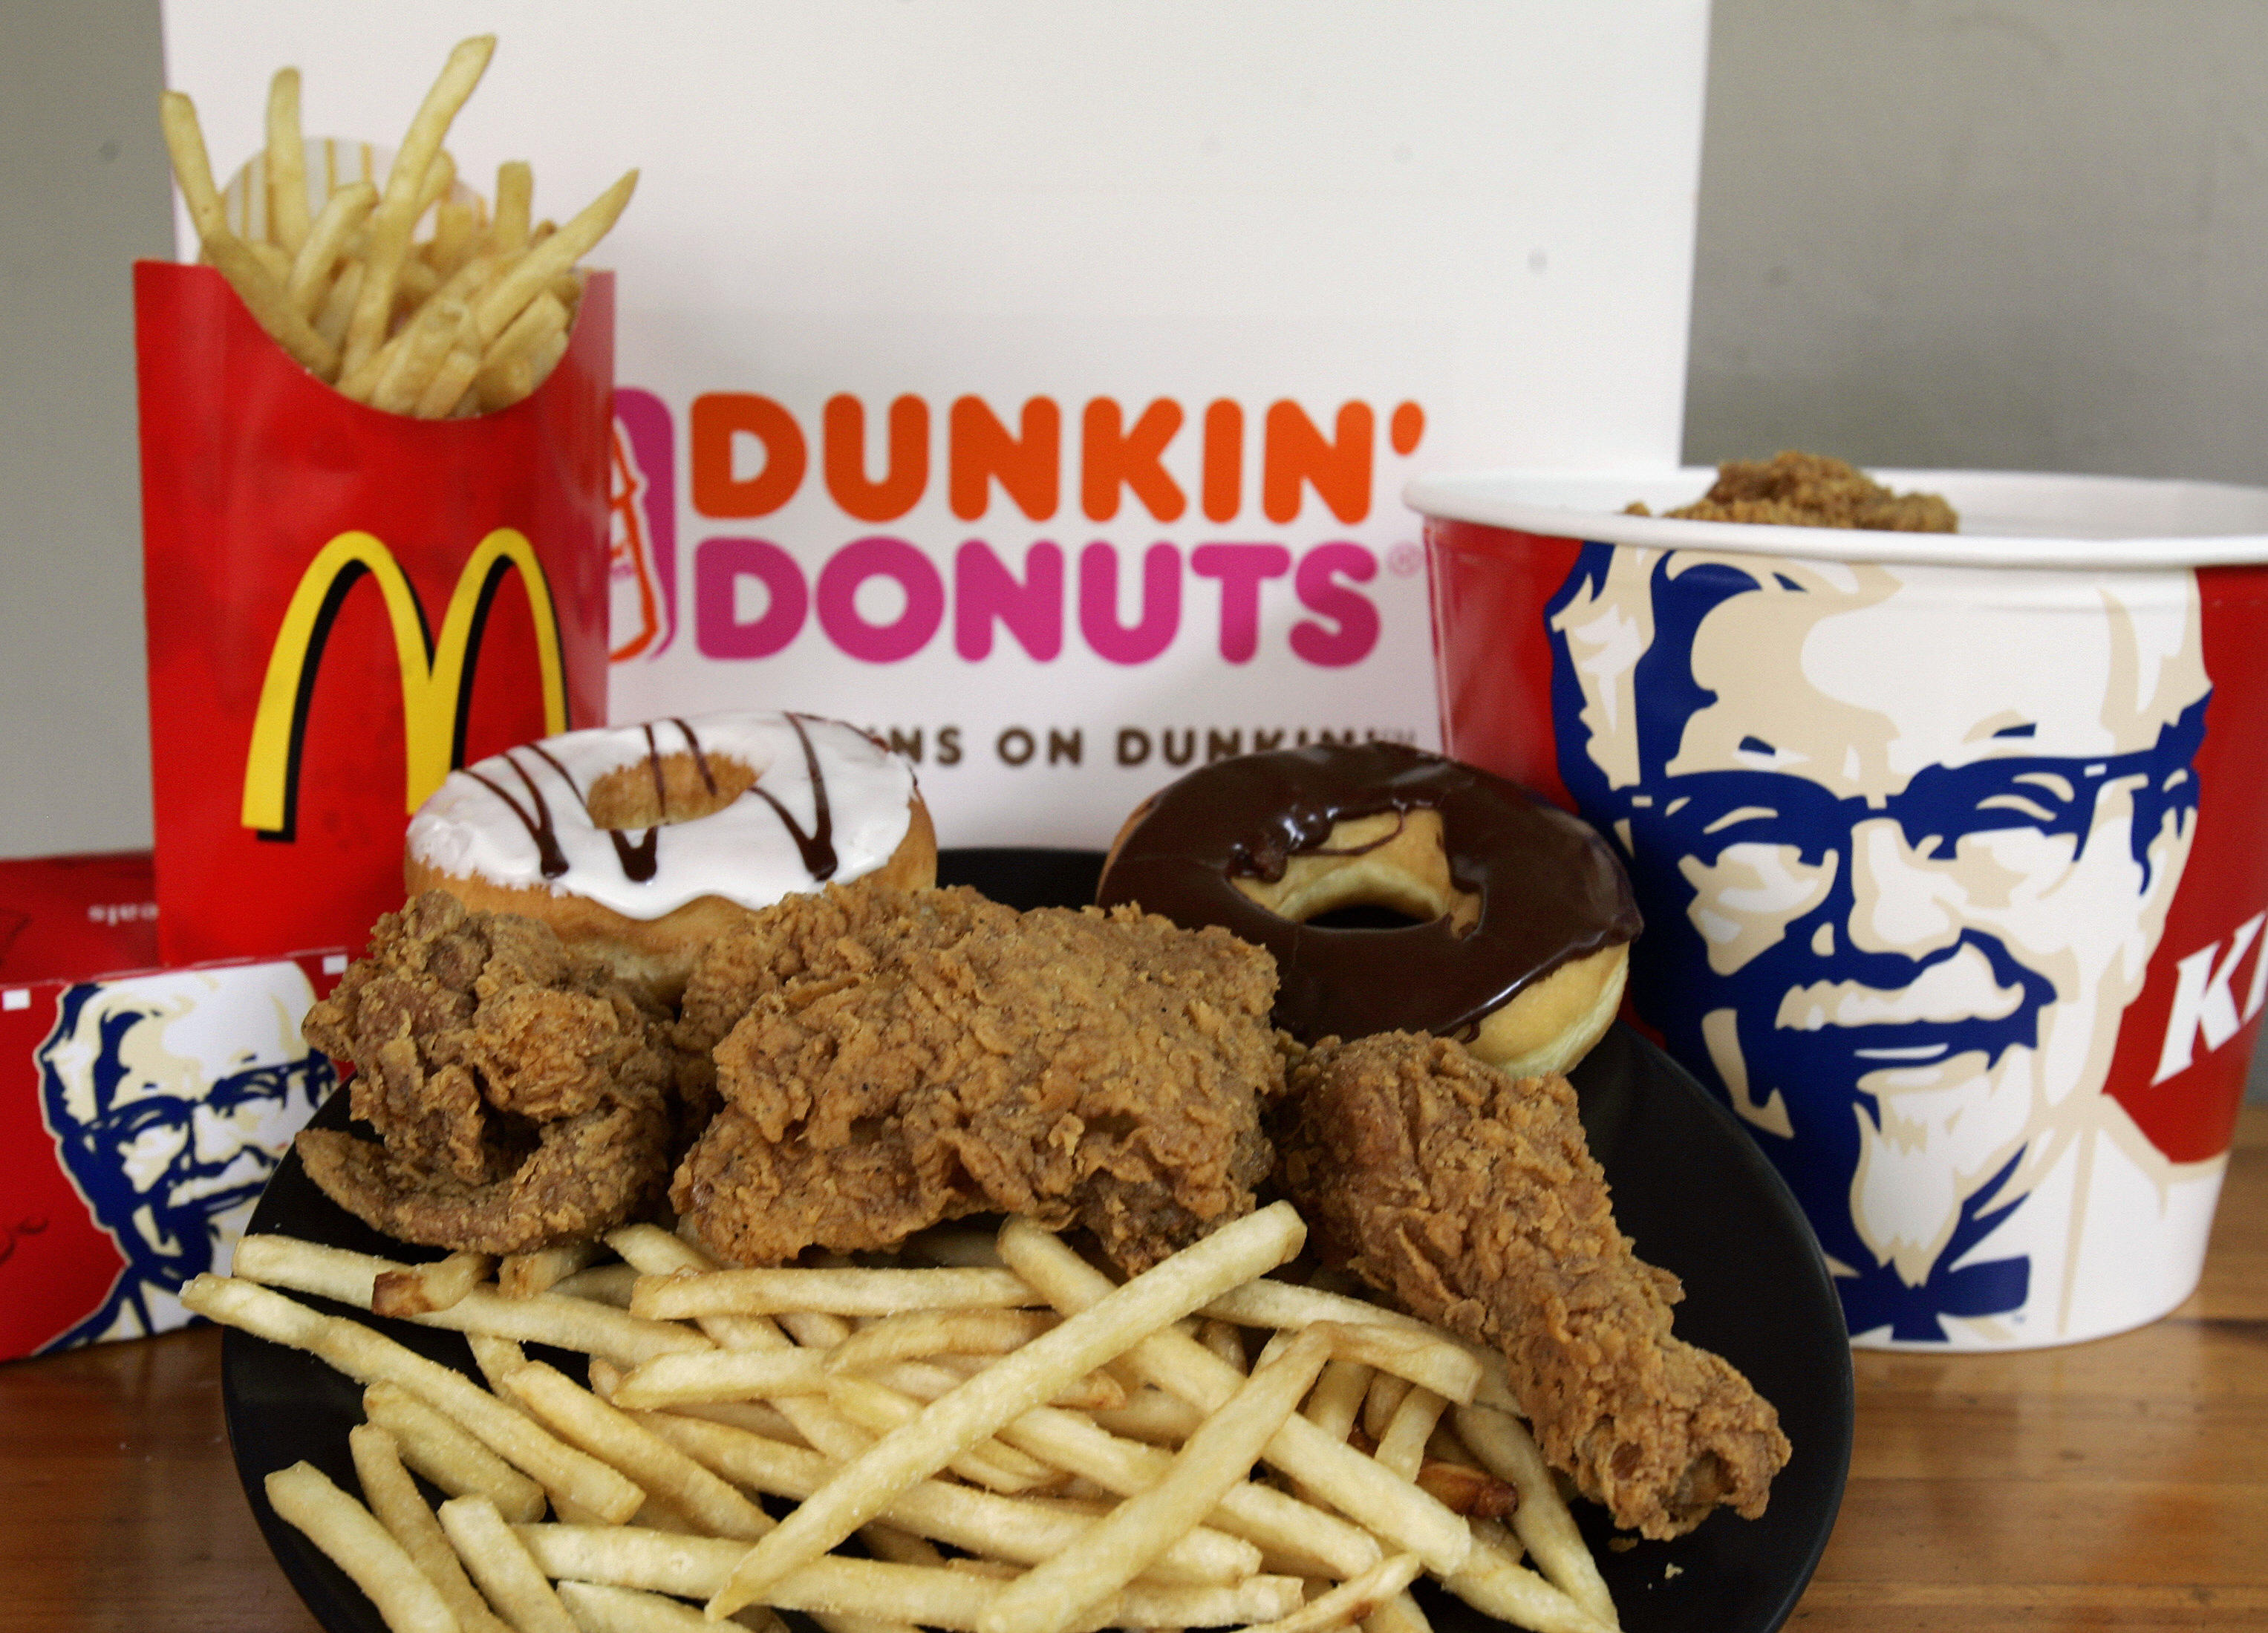 "Doughnuts from Dunkin"" Donuts, French fries from McDonalds and fried chicken from Kentucky Fried Chicken are displayed as staples of the American diet"